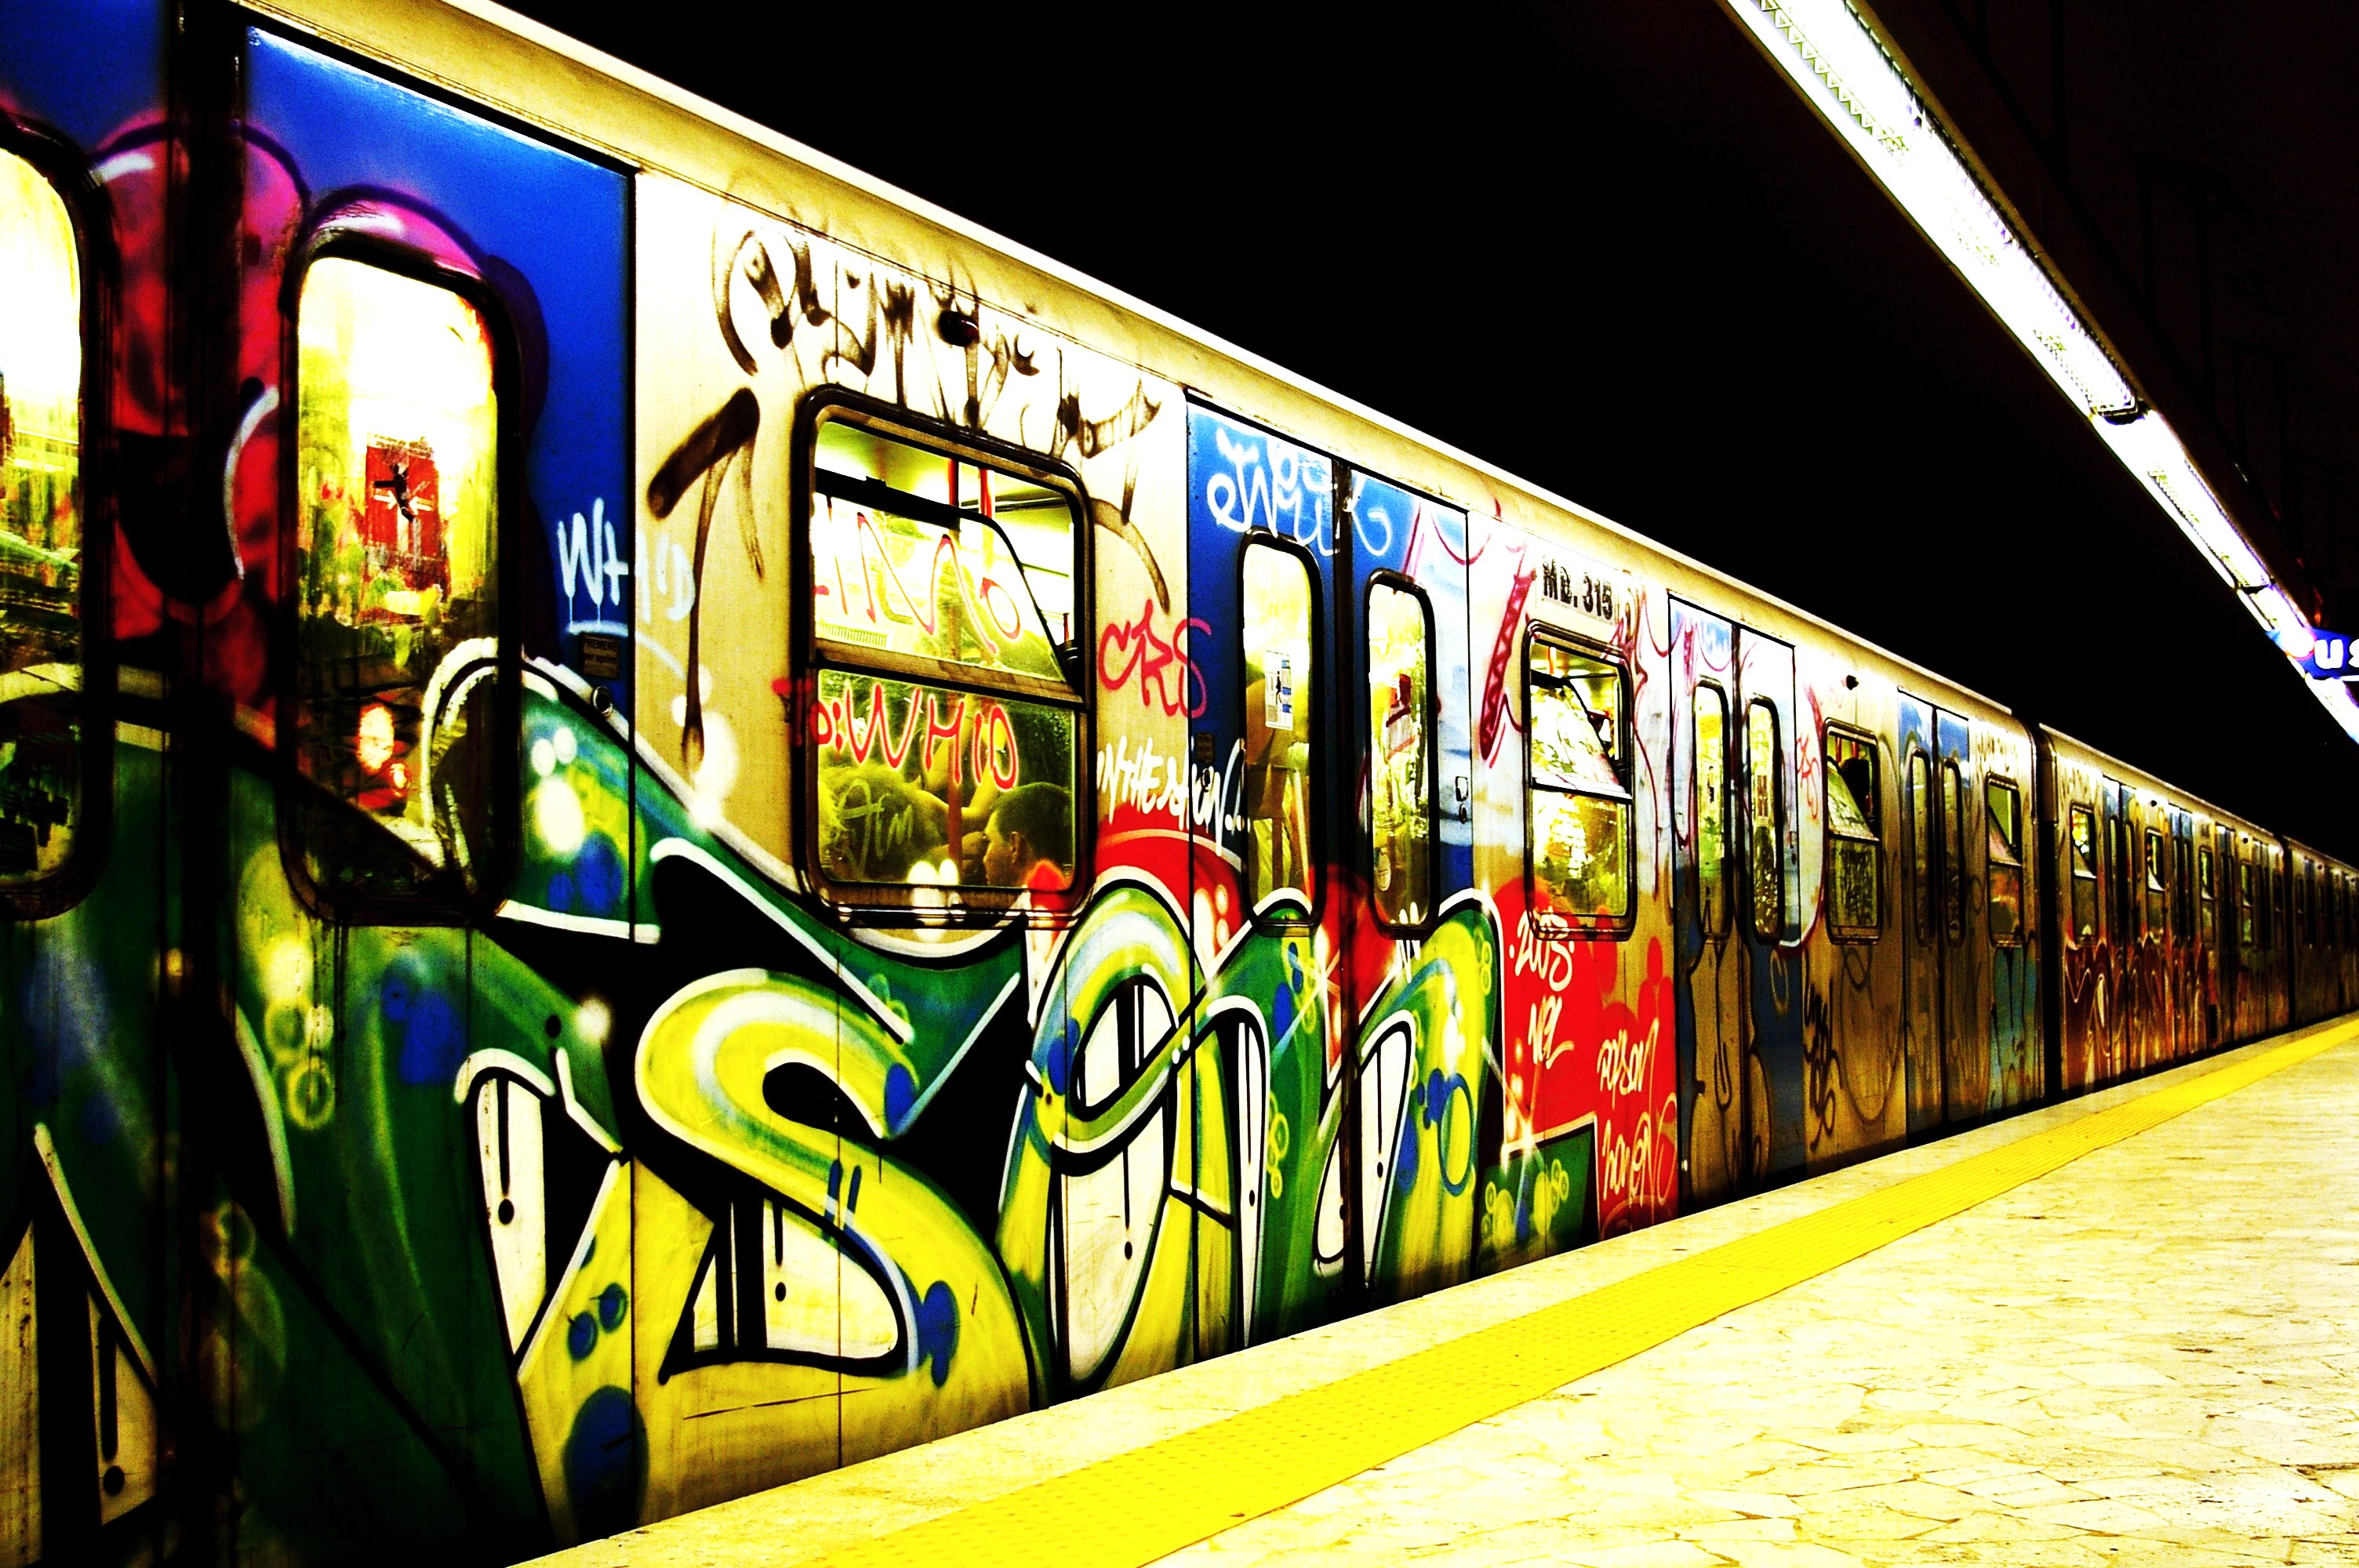 Graffiti wallpapers - Free A12 fonts HD Desktop background images pictures downloads